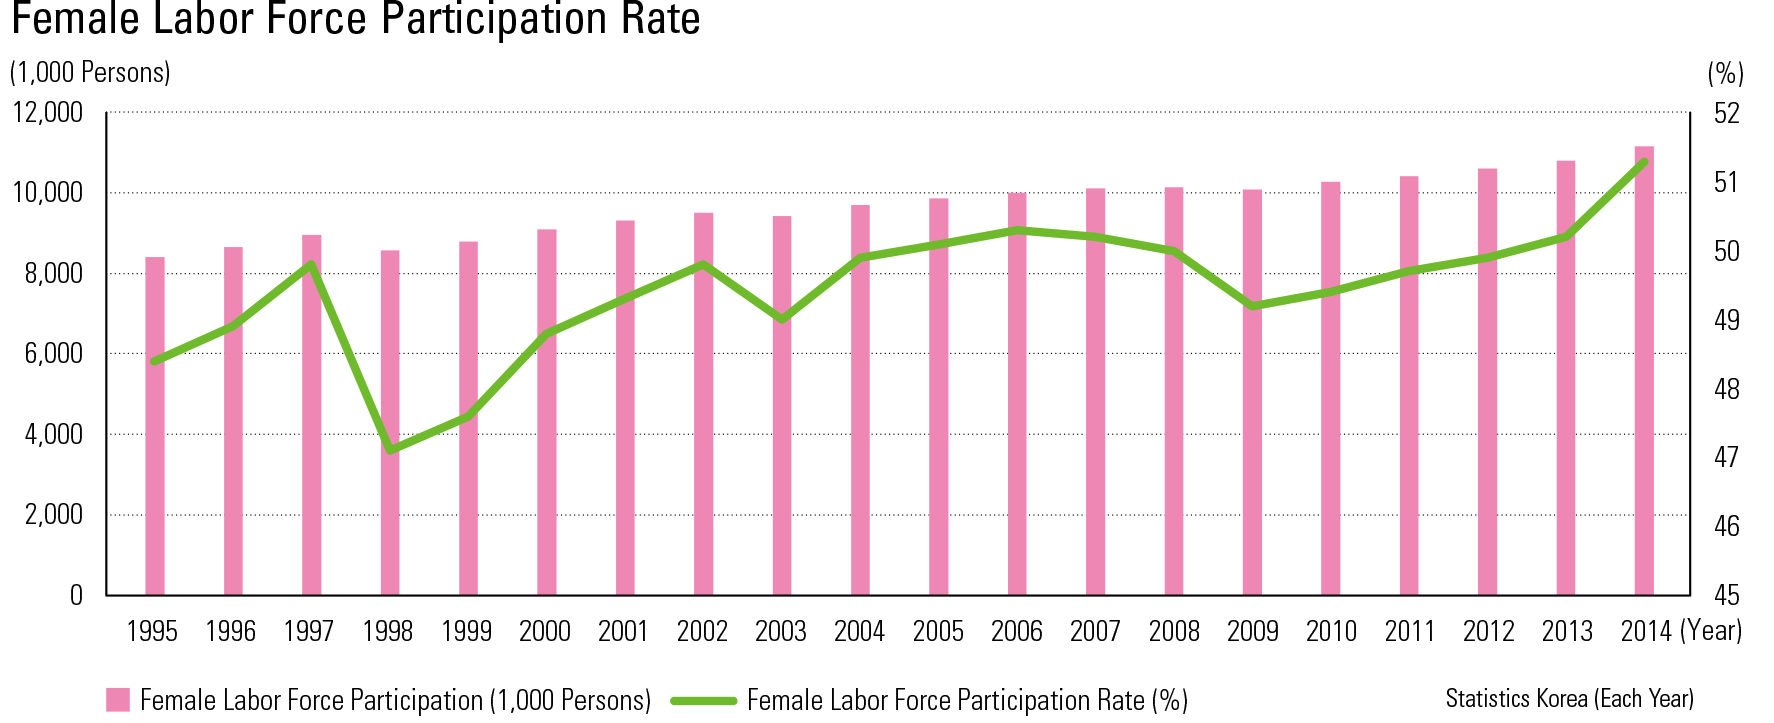 "Female Labor Force Participation Rate<p class=""oz_zoom"" zimg=""http://imagedata.cafe24.com/us_3/us3_142-4_2.jpg""><span style=""font-family:Nanum Myeongjo;""><span style=""font-size:18px;""><span class=""label label-danger"">UPDATE DATA</span></span></p>"